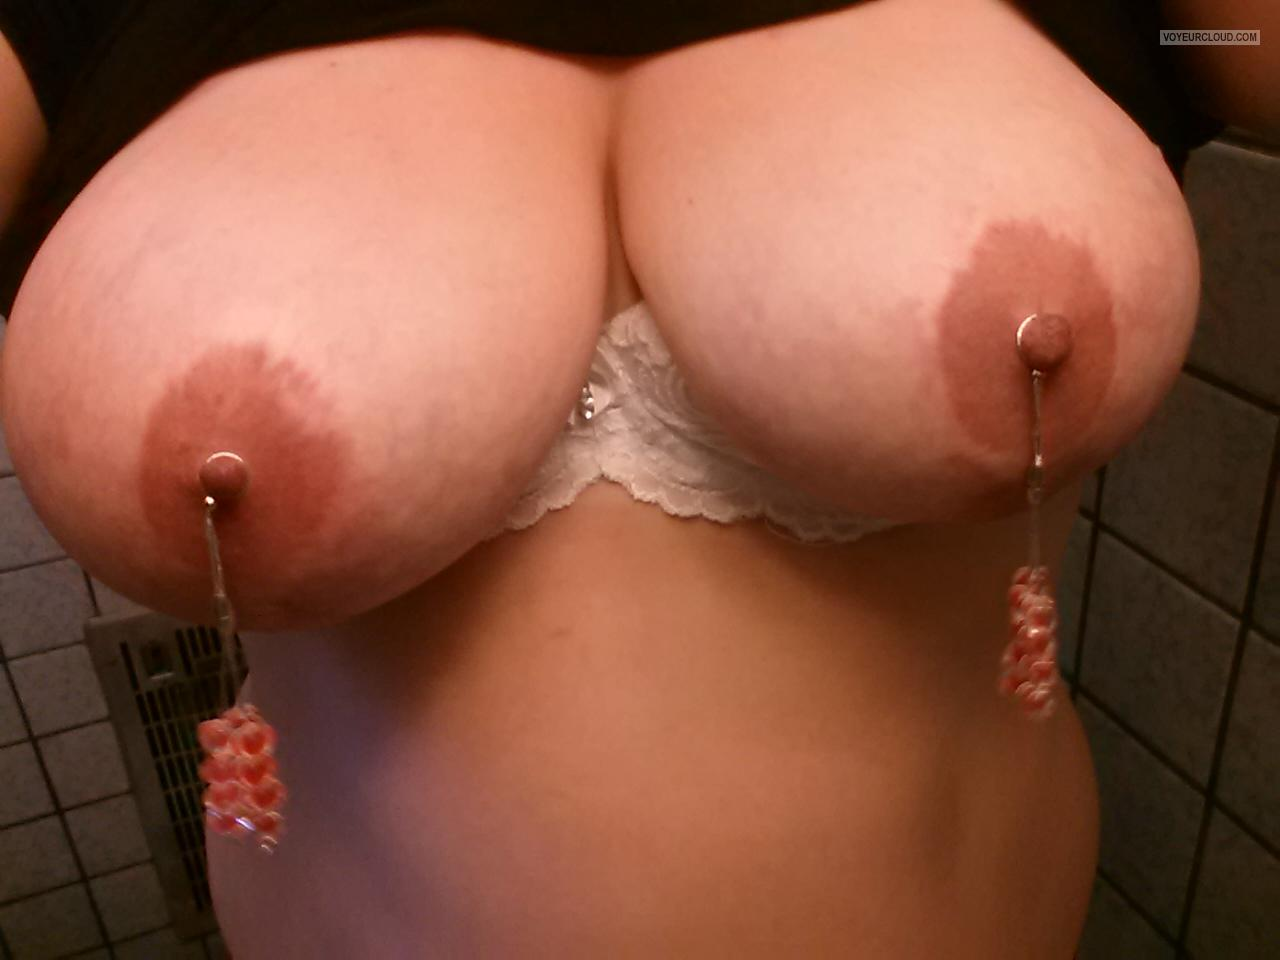 Tit Flash: My Very Big Tits (Selfie) - Tittie Bling from United States